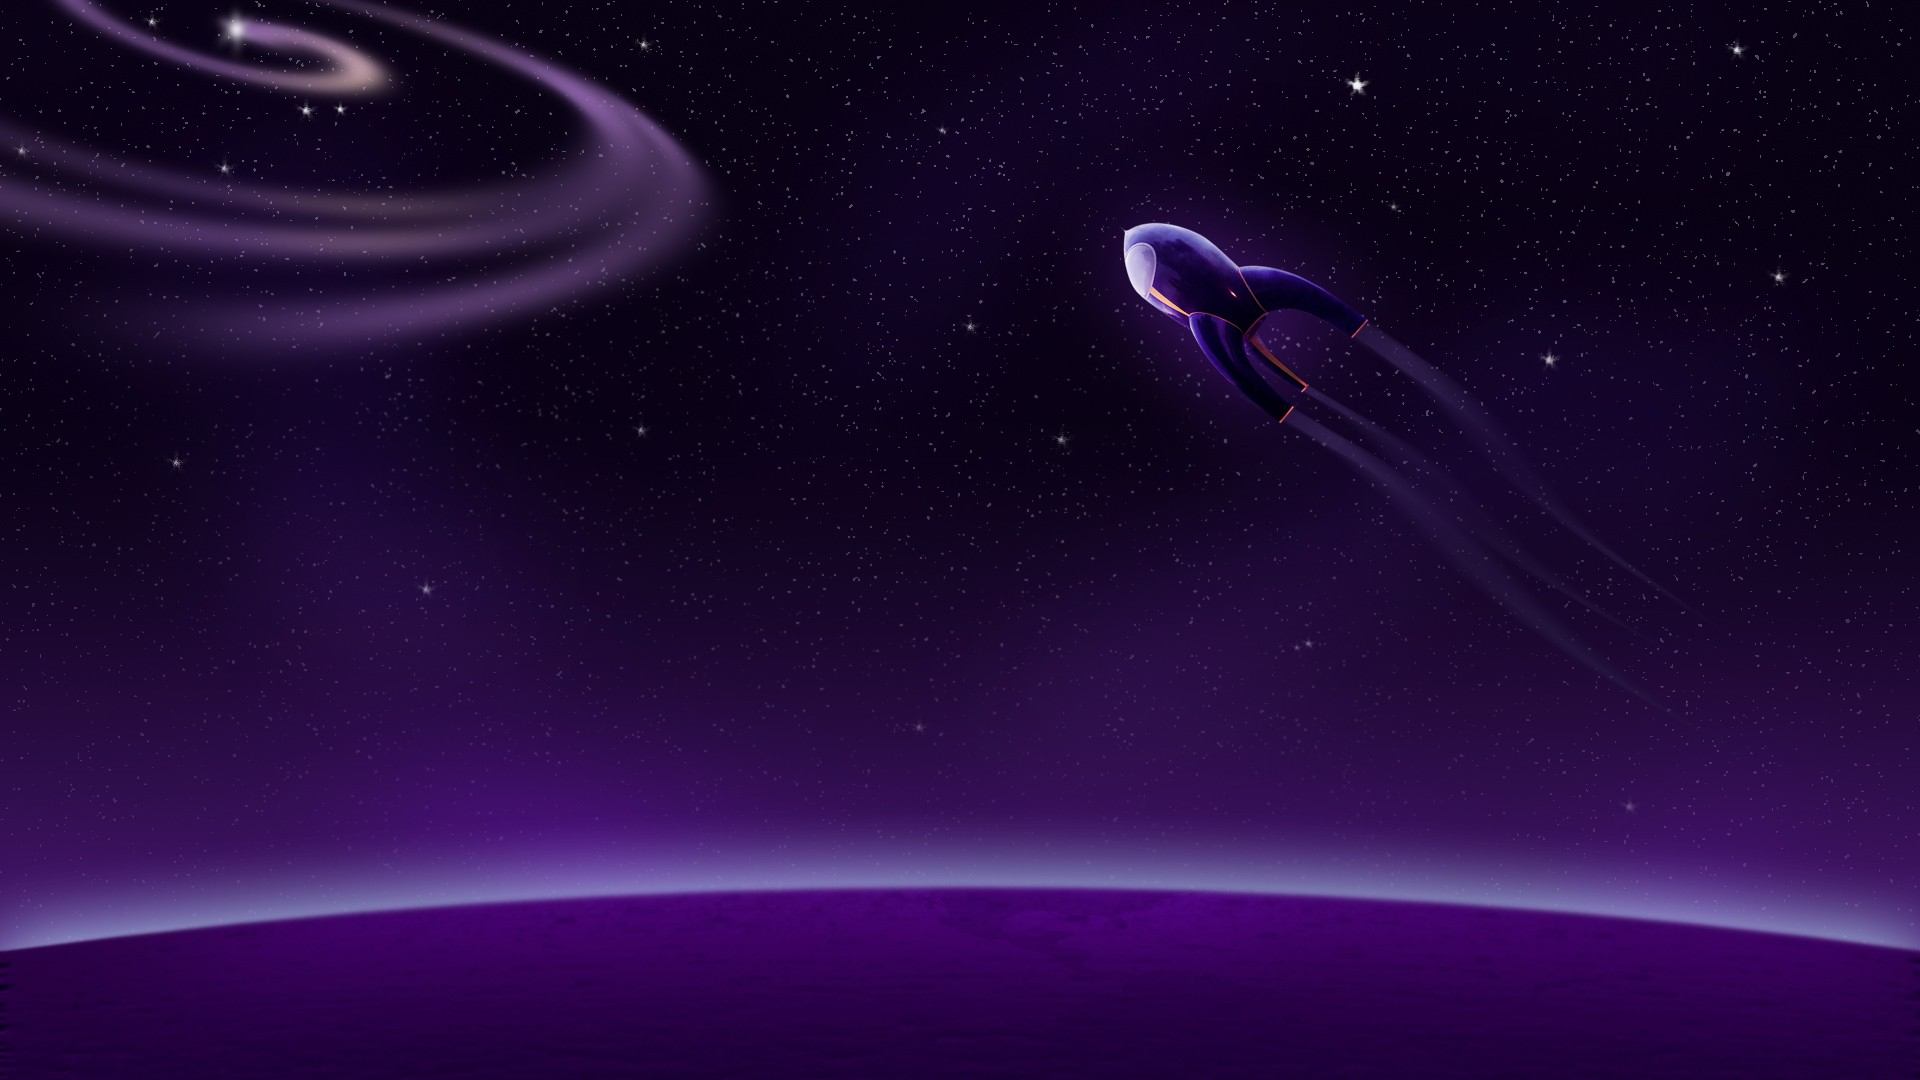 Outer space pattern stars flying purple vehicles rocket ...